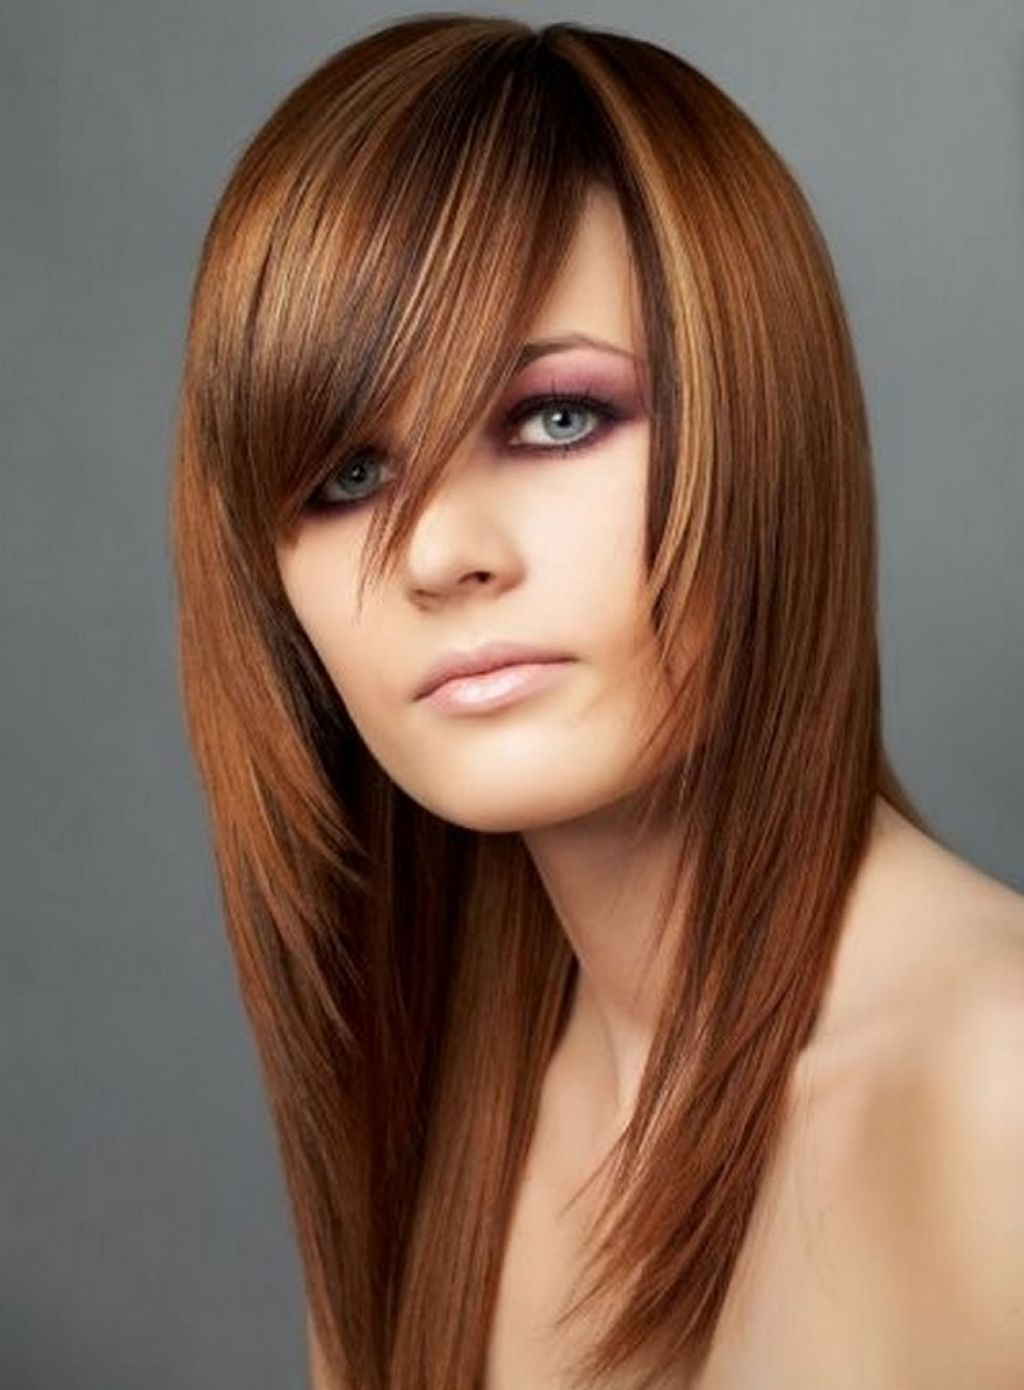 Hairstyles For Thin Hair 2015 Women Styles Hairstyles Makeup Tutorials Fashion Dresses And Long Hair With Bangs Haircuts For Long Hair Medium Hair Styles